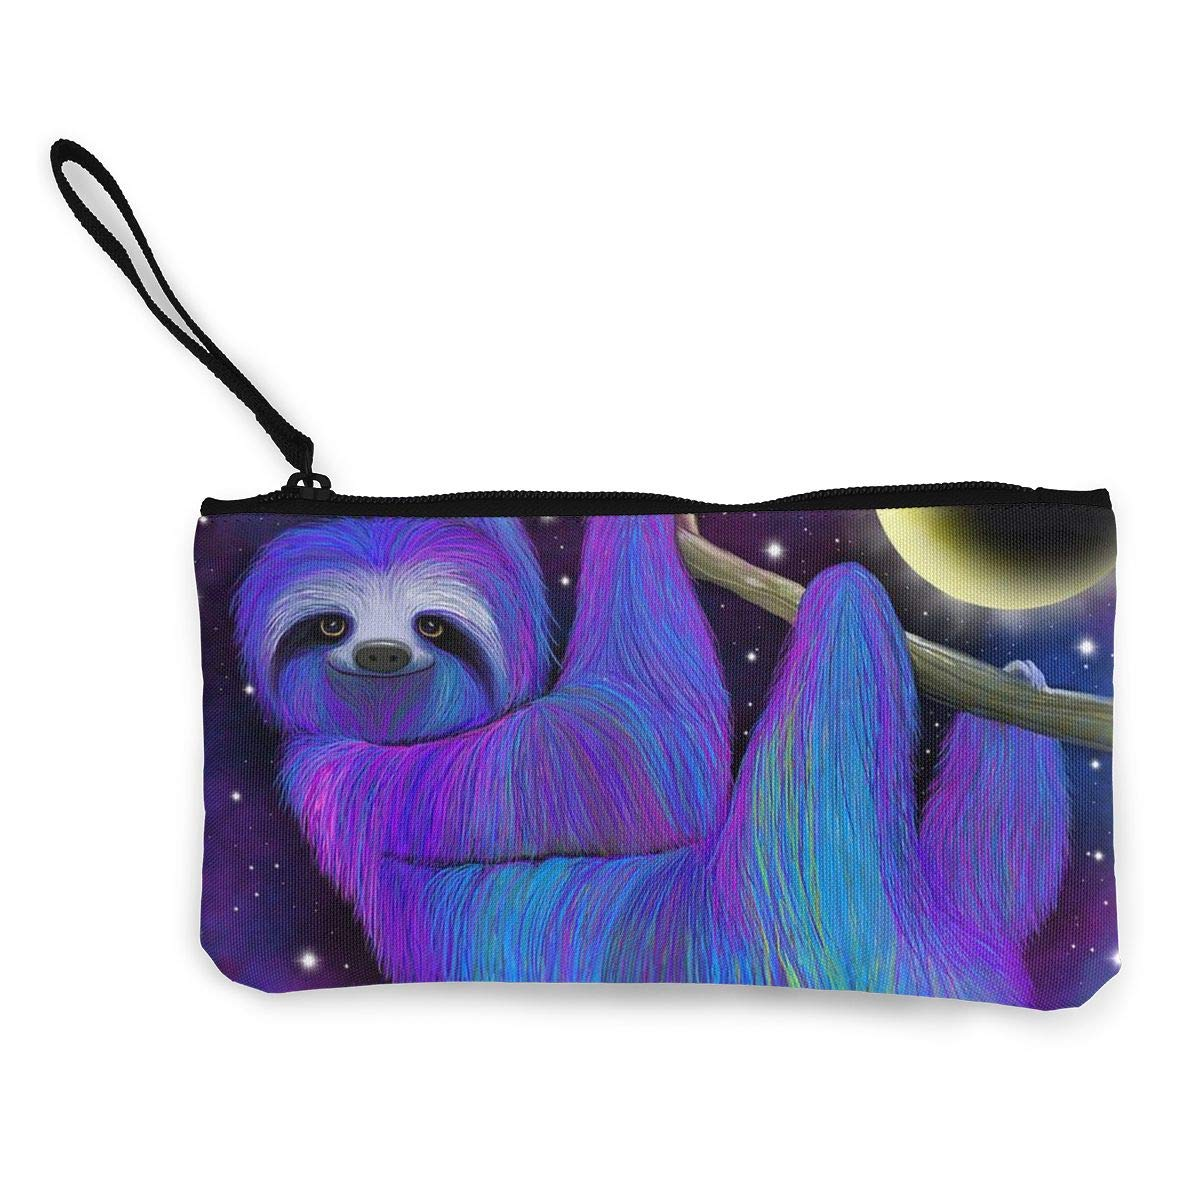 Cellphone Bag With Handle Make Up Bag DH14hjsdDEE Sloth Moonlight Zipper Canvas Coin Purse Wallet